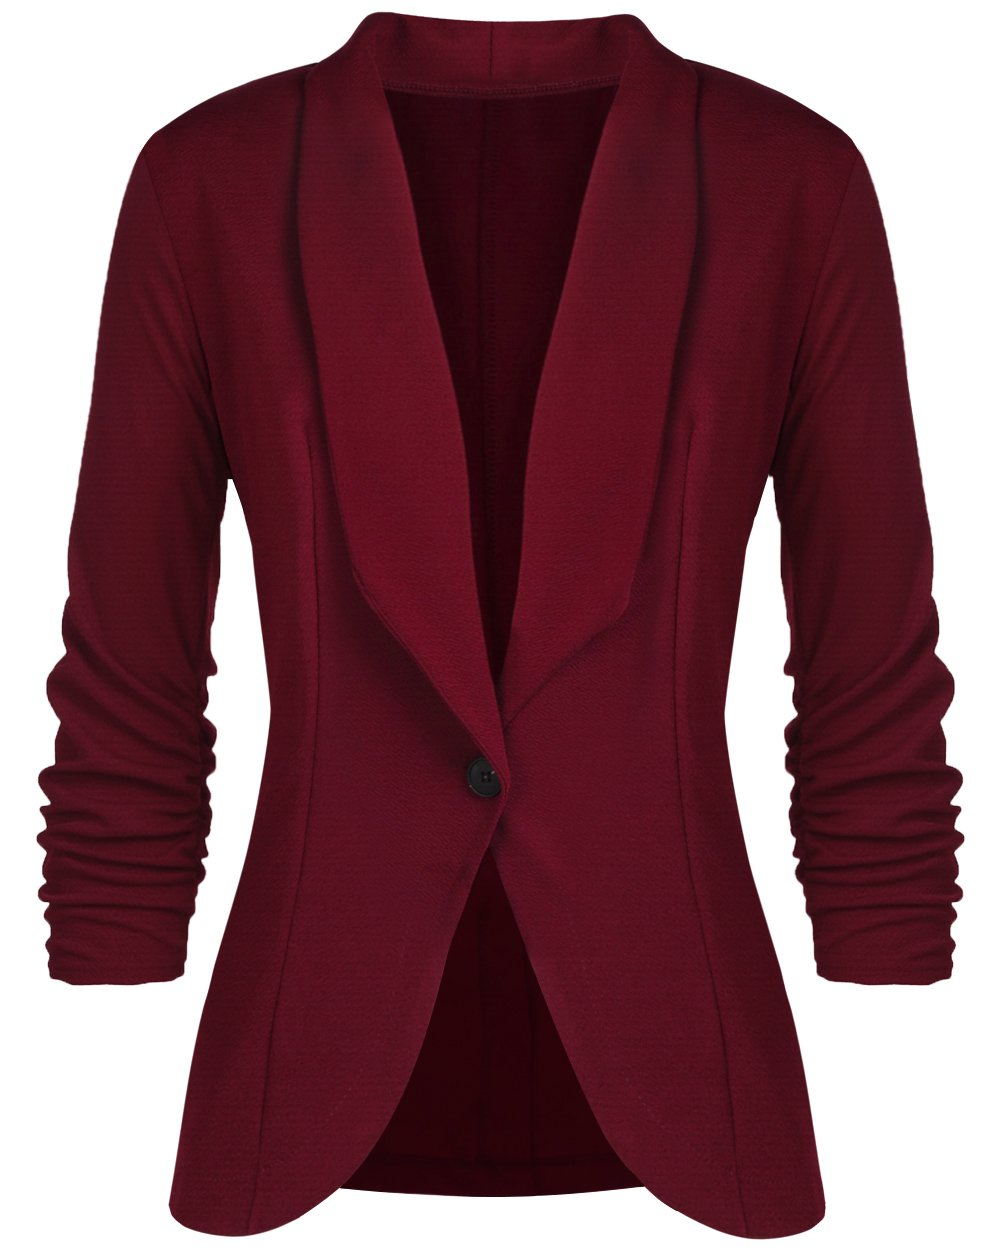 sanatty Women's 3/4 Ruched Sleeve Open Front Lightweight Work Office Blazer Jacket,Winered,Small by sanatty (Image #2)